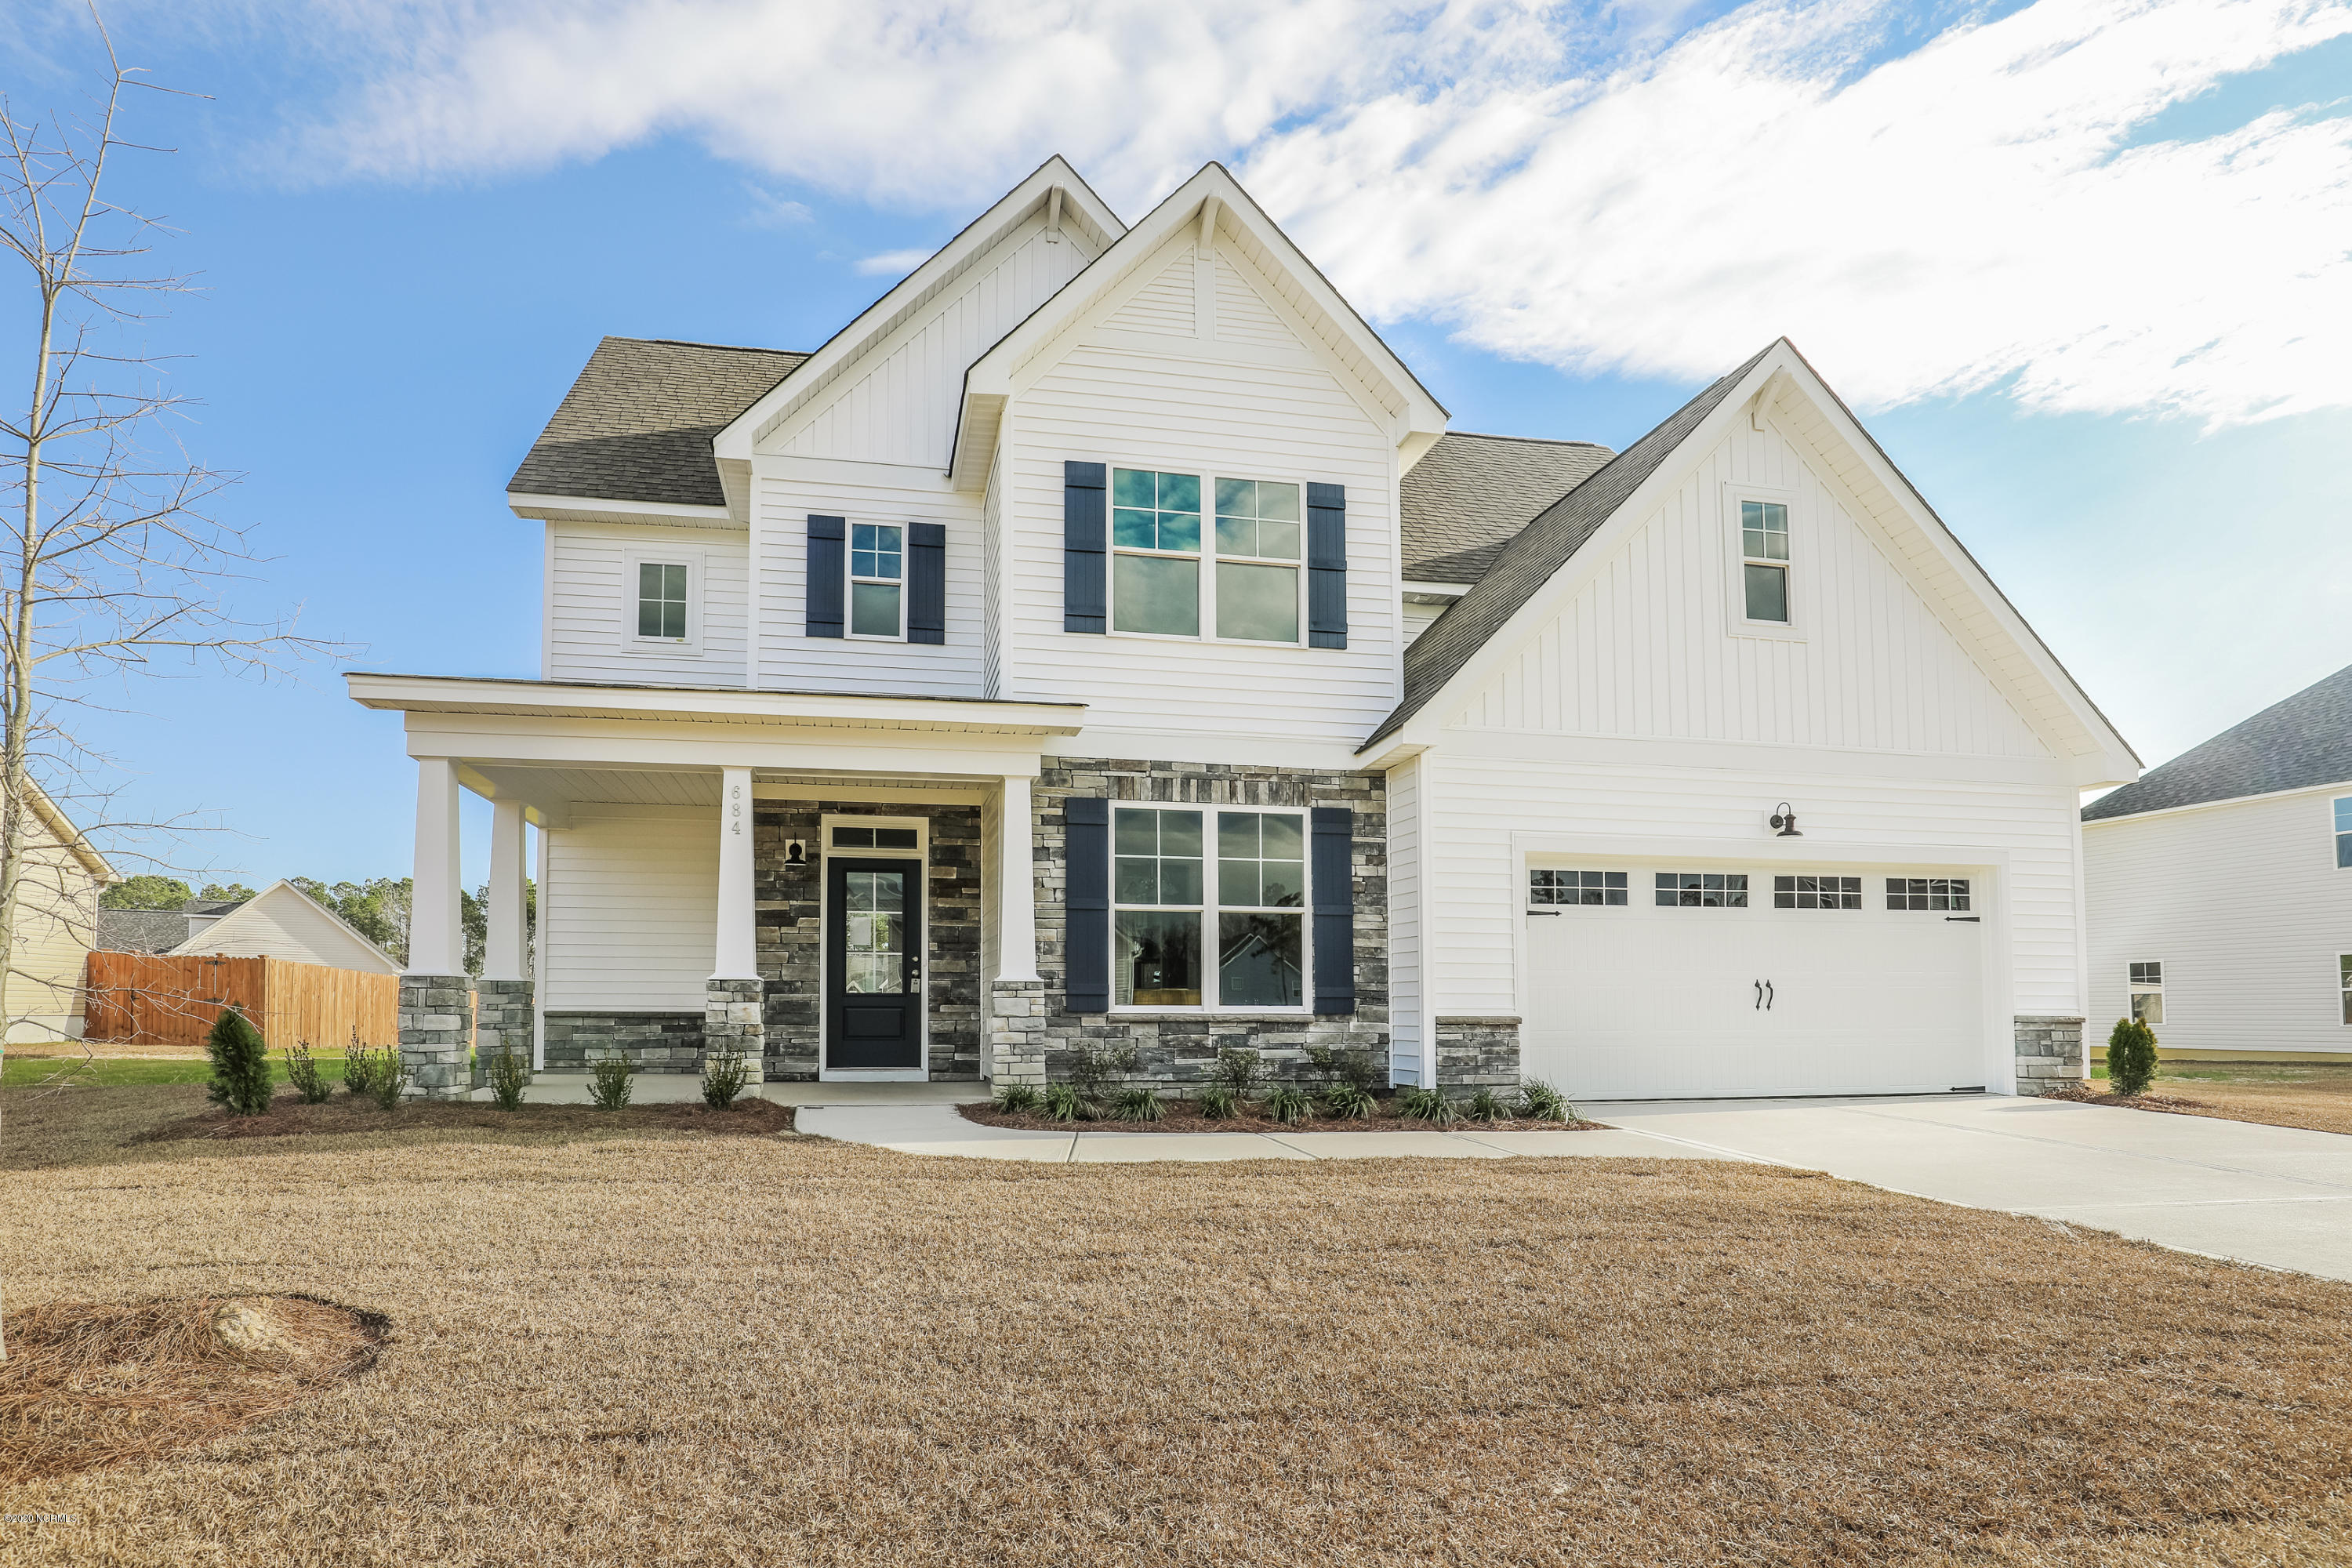 Stunning pre sale Georgetown floor plan loaded with upgrades! Side load garage, covered rear porch, and so much more! 70 West Builders provides coastal craftsmanship in every build with stunning features!**all photos are of similar home in neighborhood**